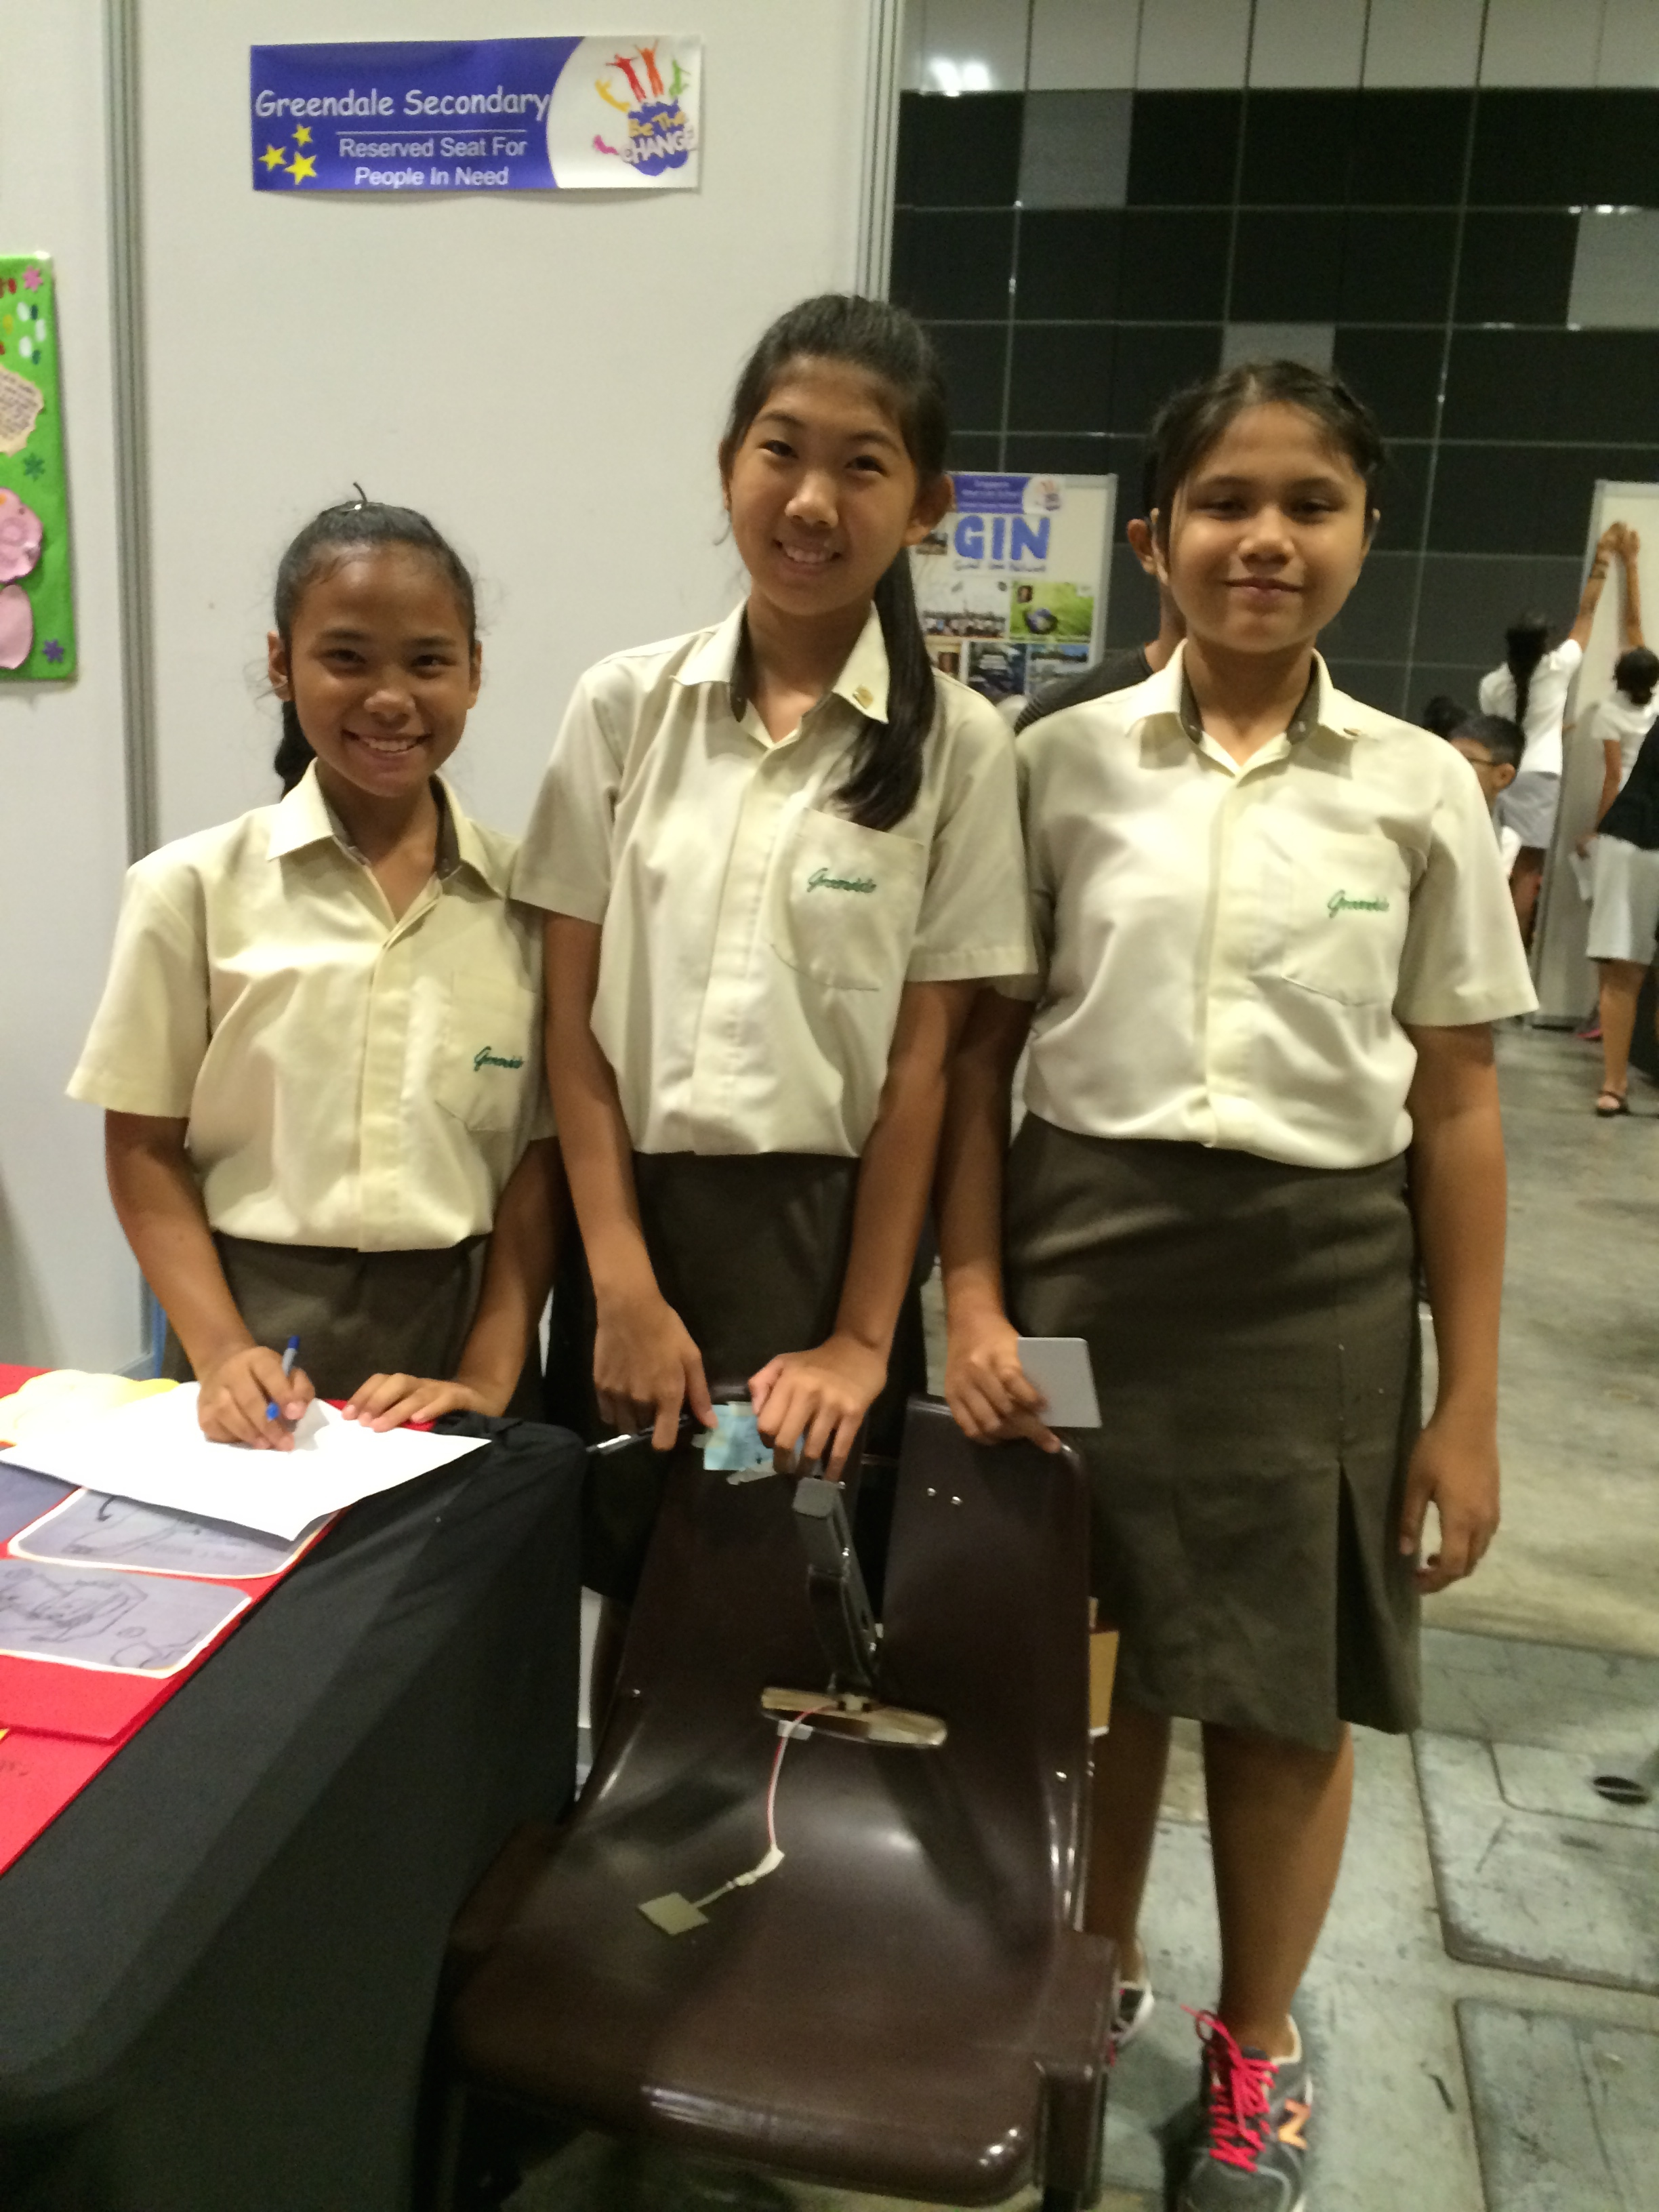 Students from Greendale Secondary School